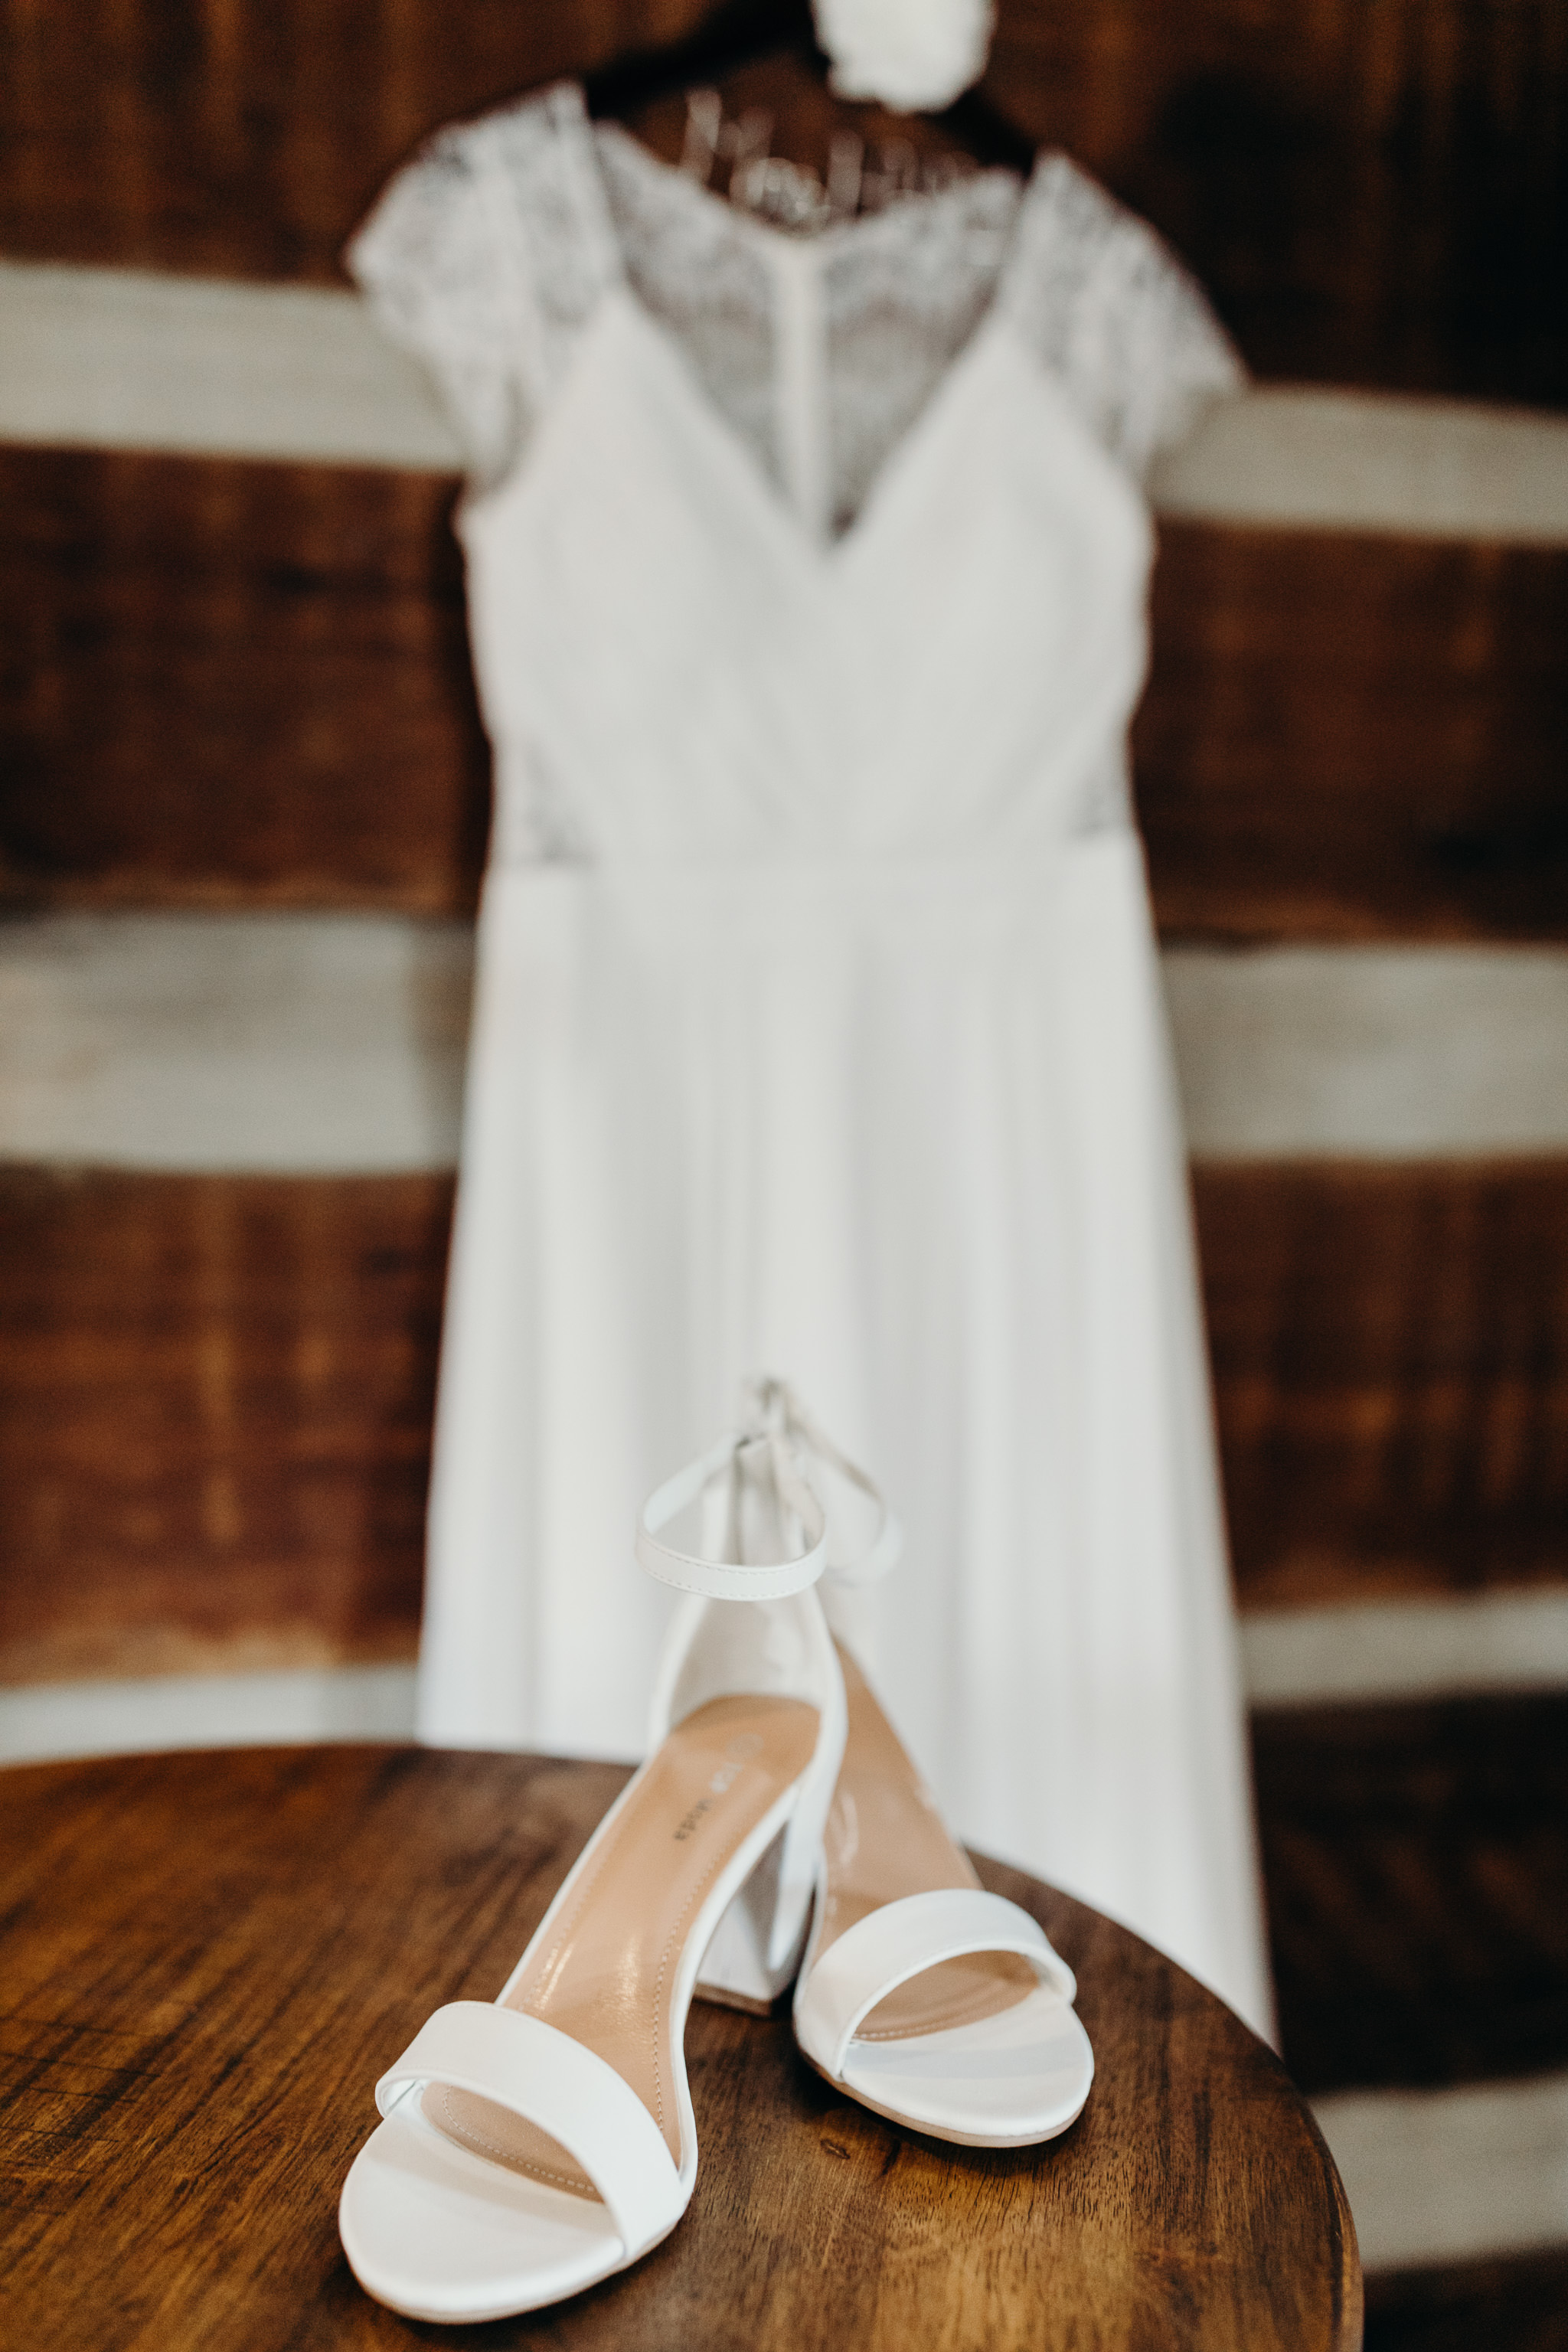 Bride's dress and shoes detail photo